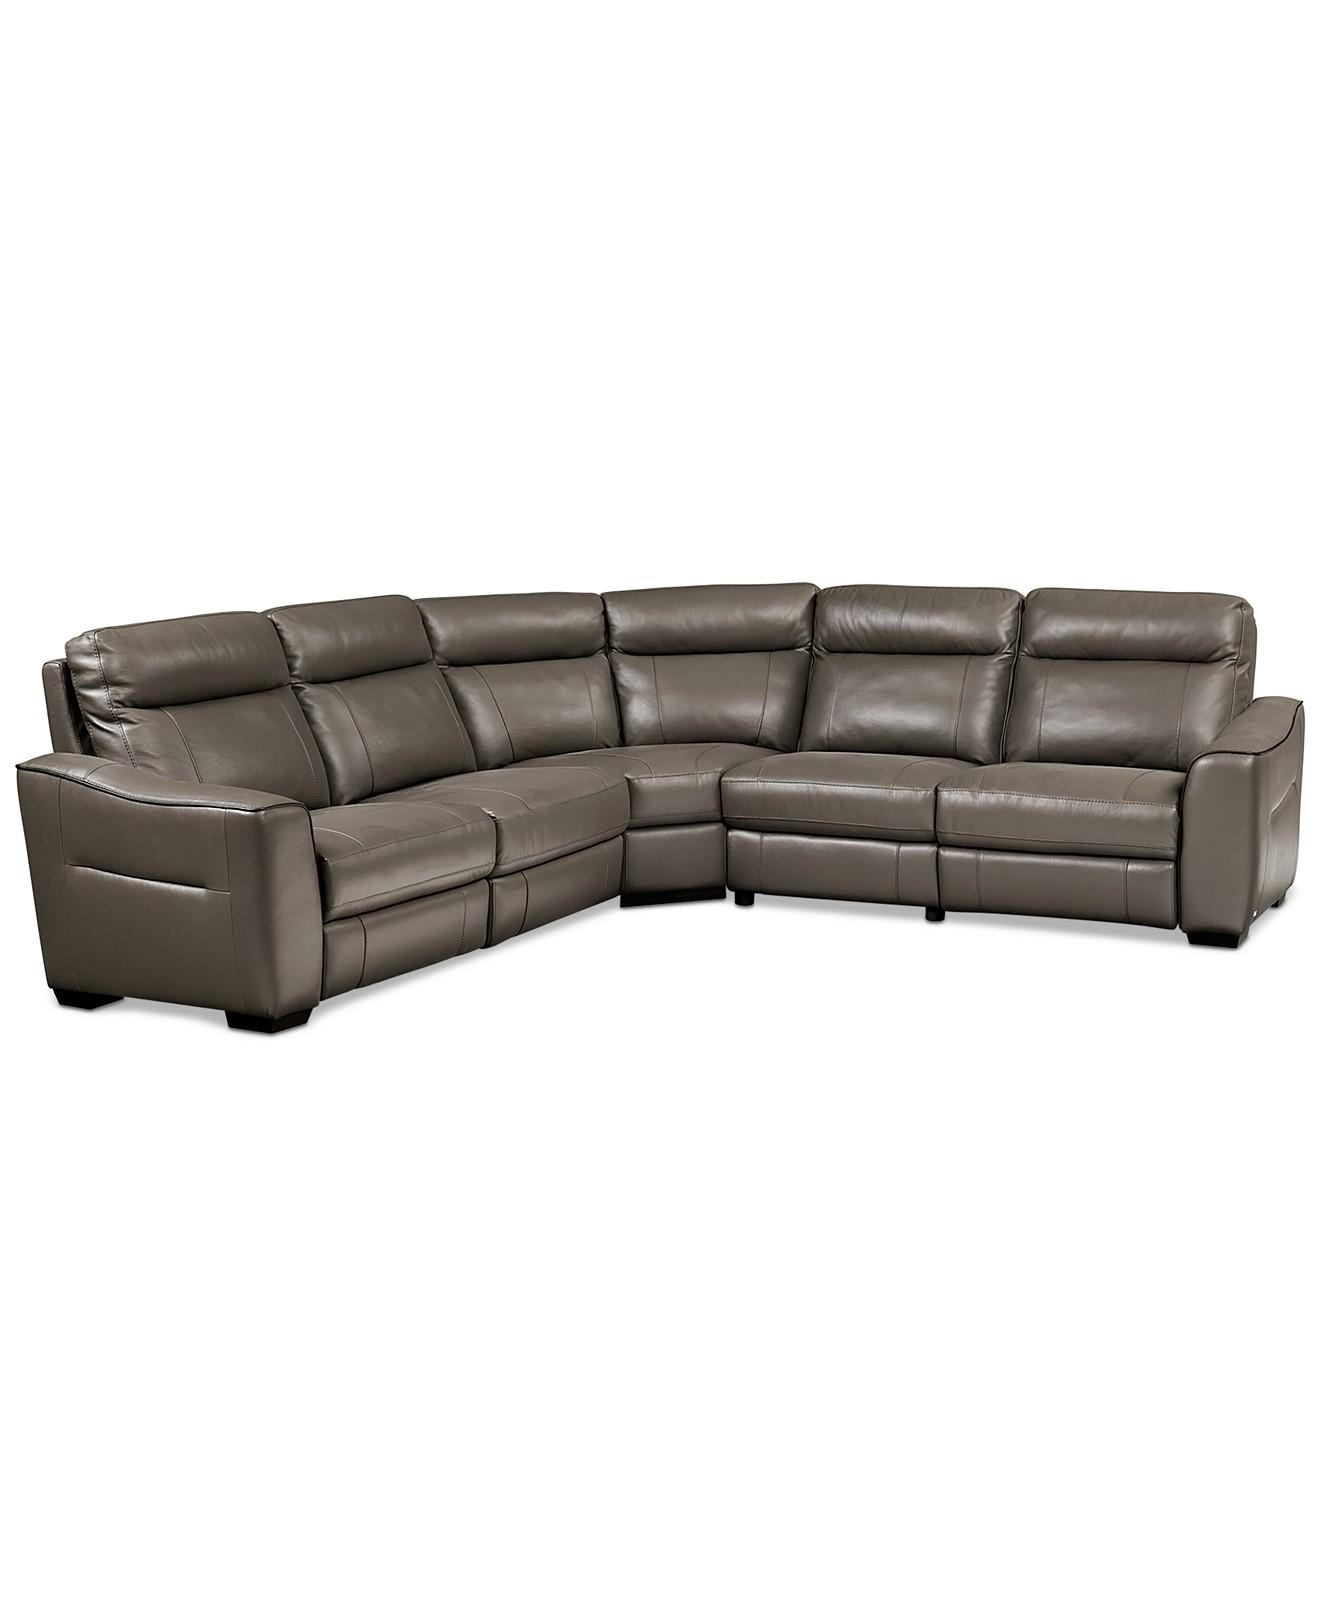 Curved Sectional Sofas At Macys | Tehranmix Decoration Inside Macys Leather Sectional Sofa (Image 1 of 20)